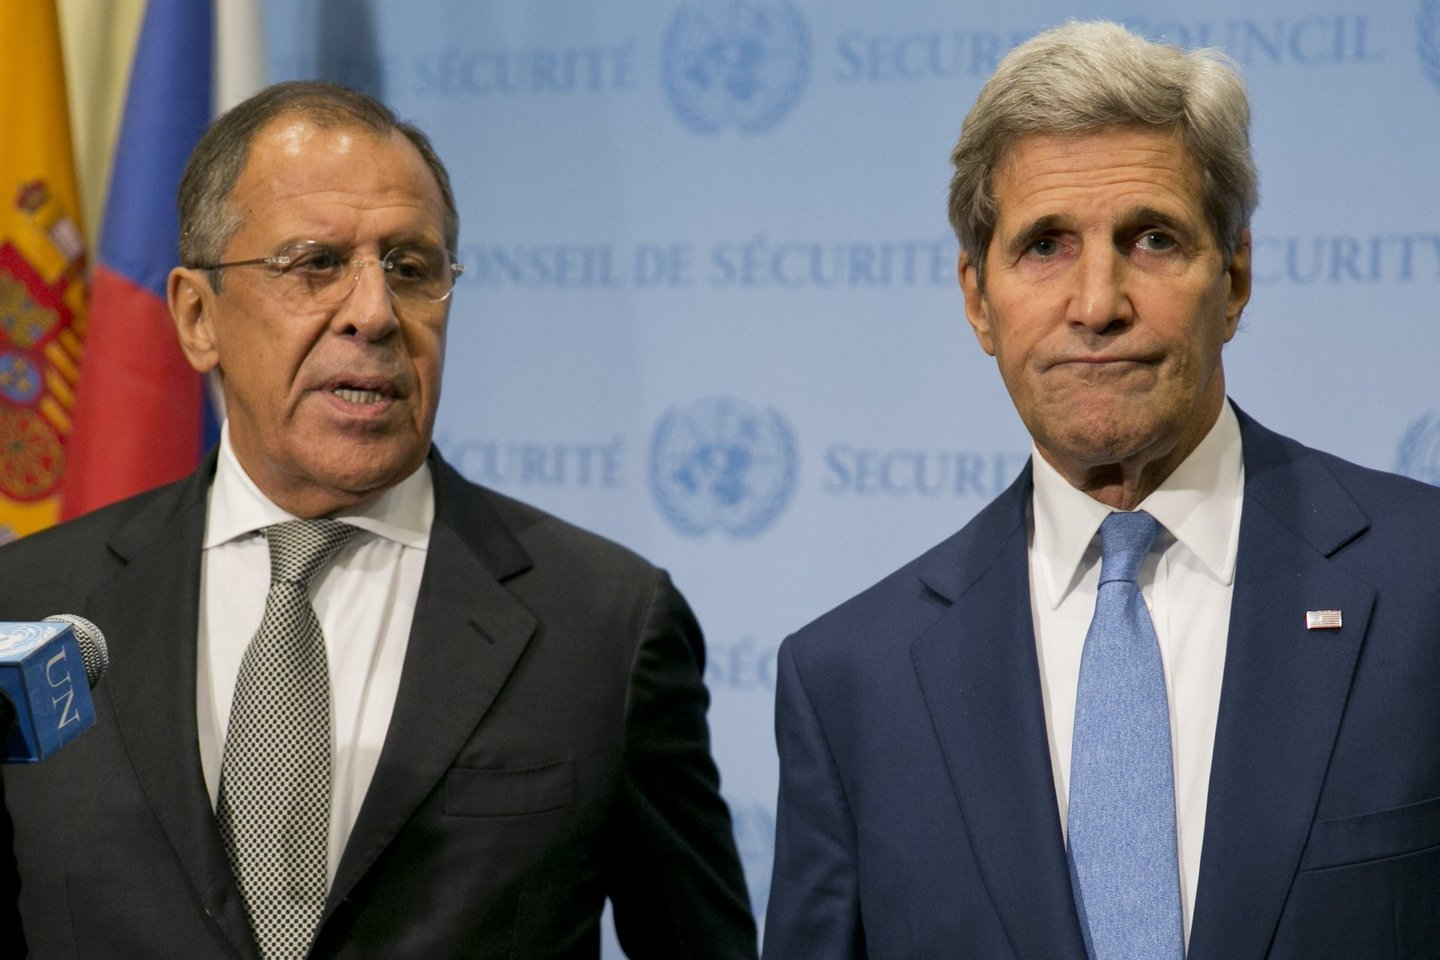 """United States Secretary of State John Kerry (R) and Russia Foreign Minister Sergey Lavrov speak to the media after a meeting concerning Syria at the United Nations headquarters in New York on September 30, 2015. Russia's air strikes in Syria targeted opposition forces and not Islamic State jihadists, a US defense official said, contradicting Russian claims. At the United Nations in New York, Secretary of State John Kerry made clear that Washington would have """"grave concerns"""" should Moscow opt to strike targets in areas where IS fighters and Al-Qaeda-linked groups are not operating. AFP PHOTO/Dominick Reuter (Photo credit should read DOMINICK REUTER/AFP/Getty Images)"""